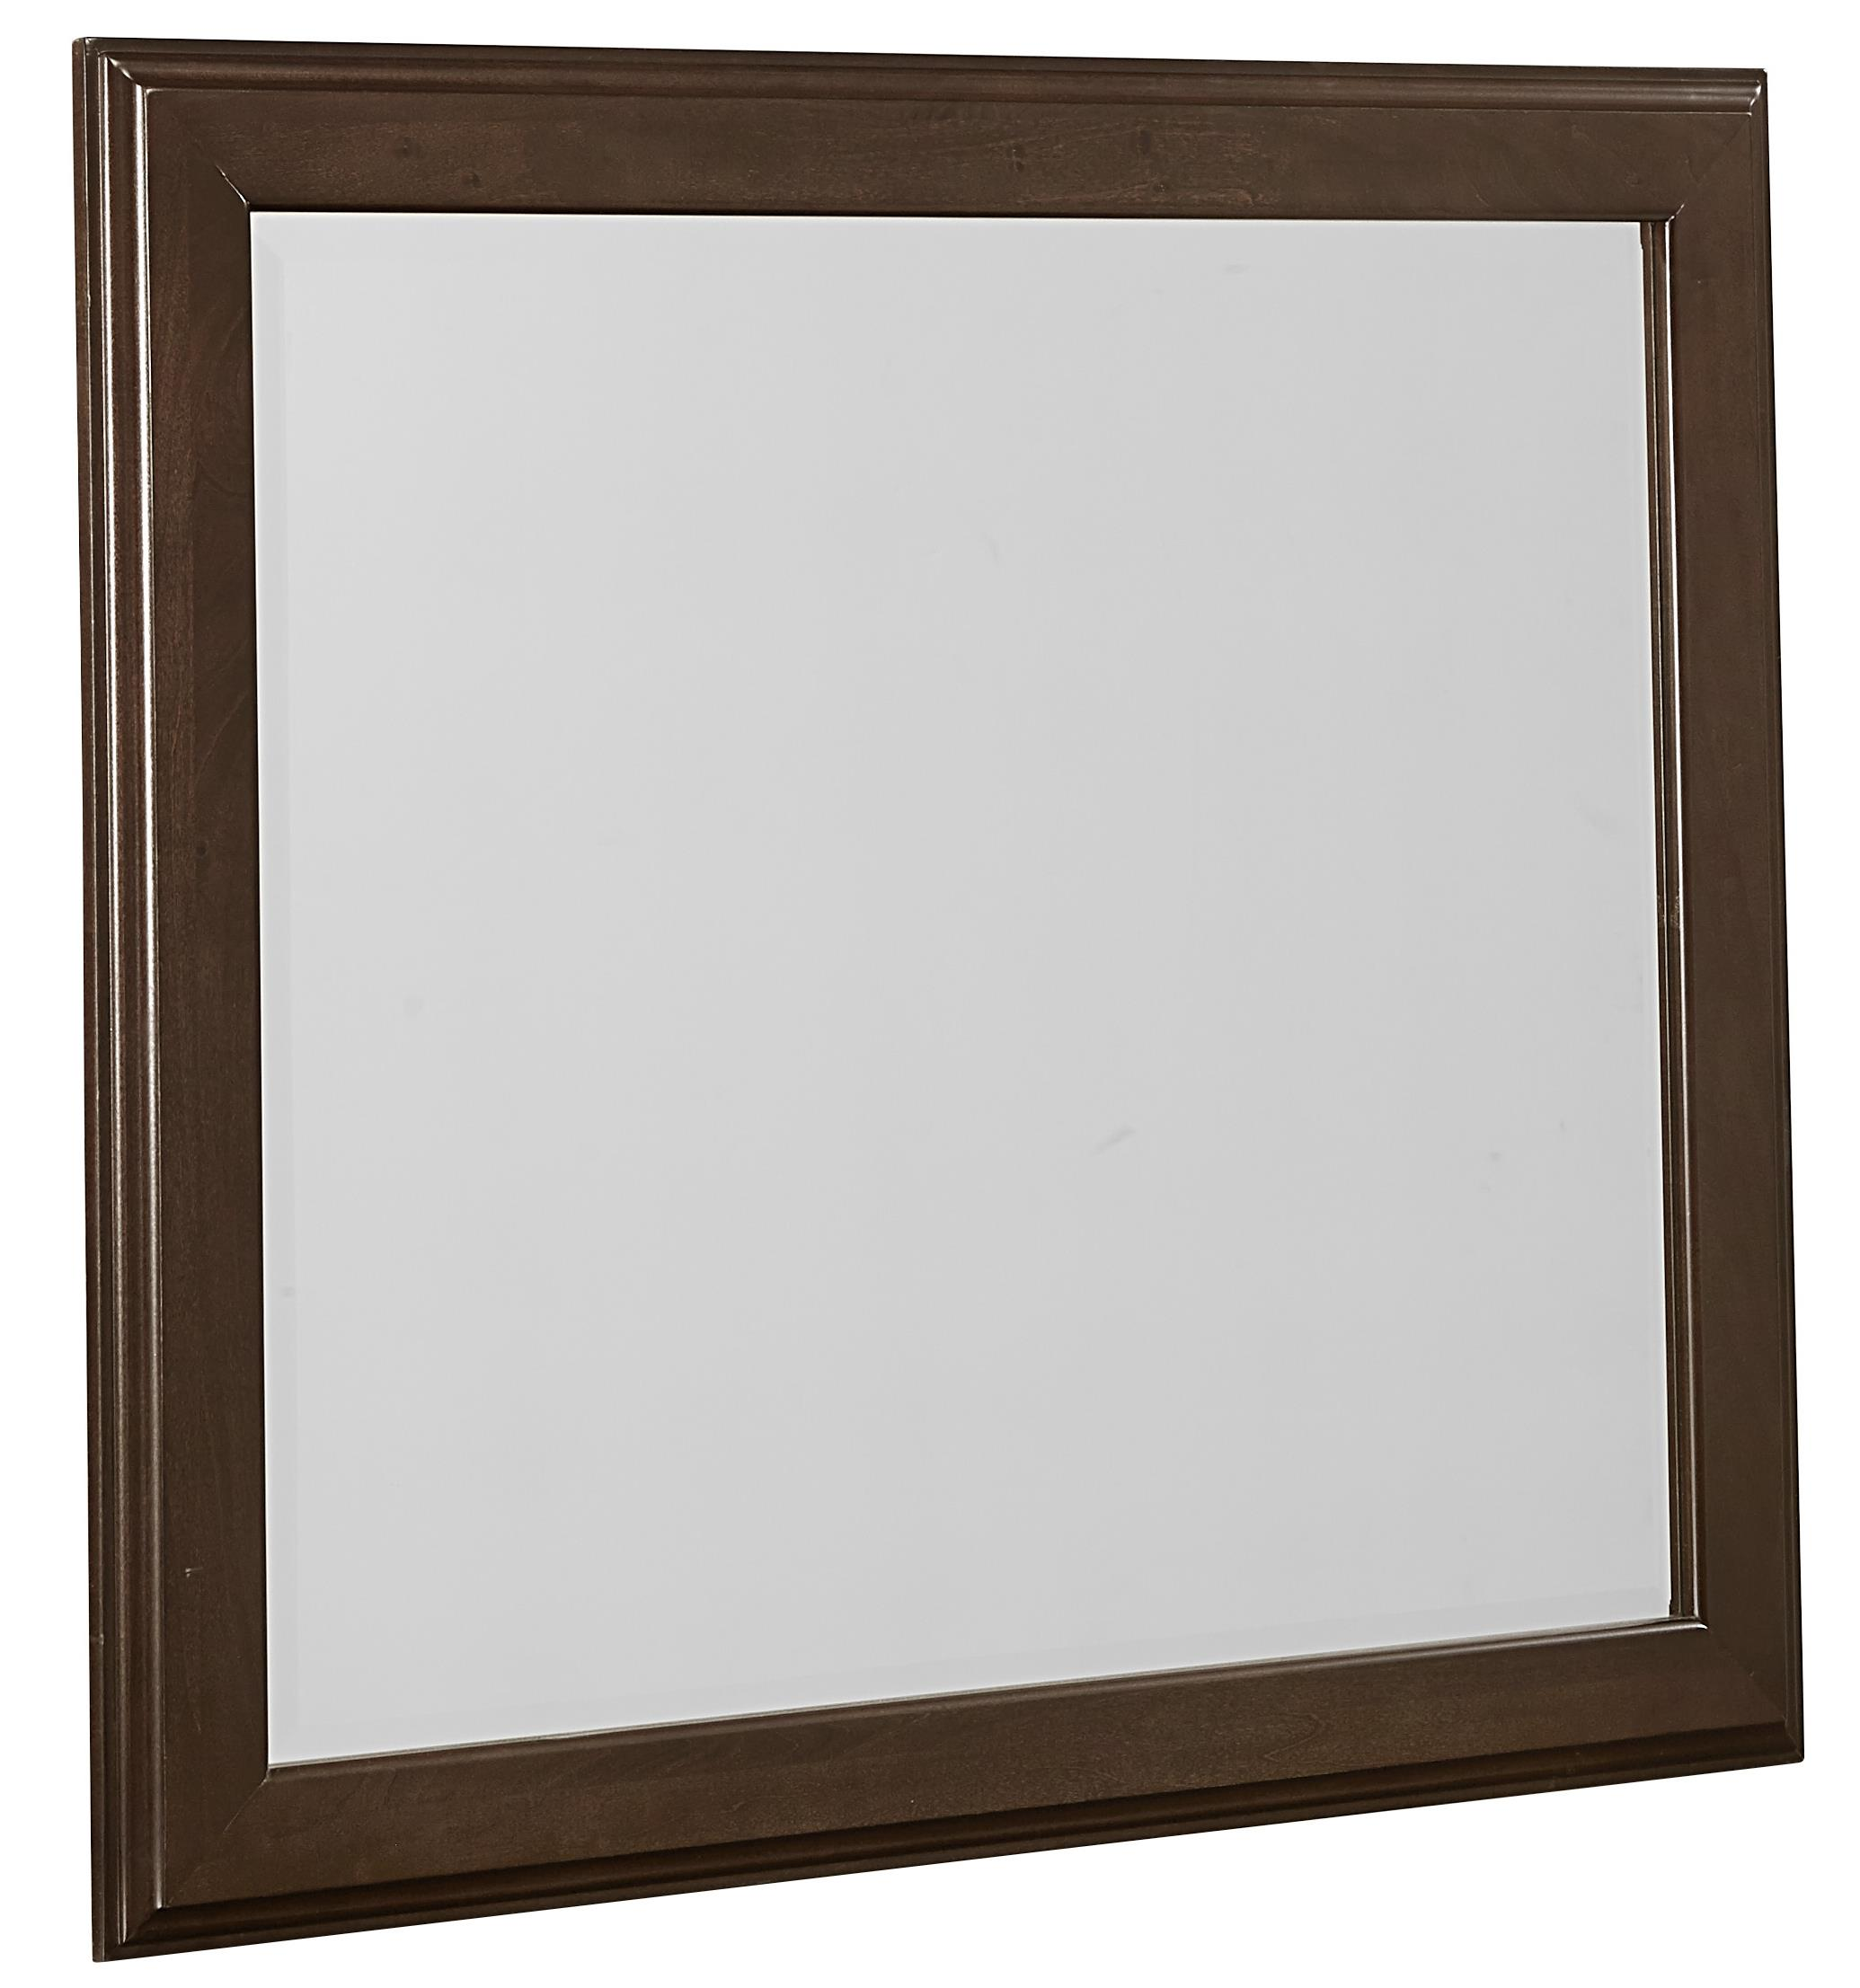 Vaughan Bassett Commentary Youth Landscape Mirror - Item Number: 392-442